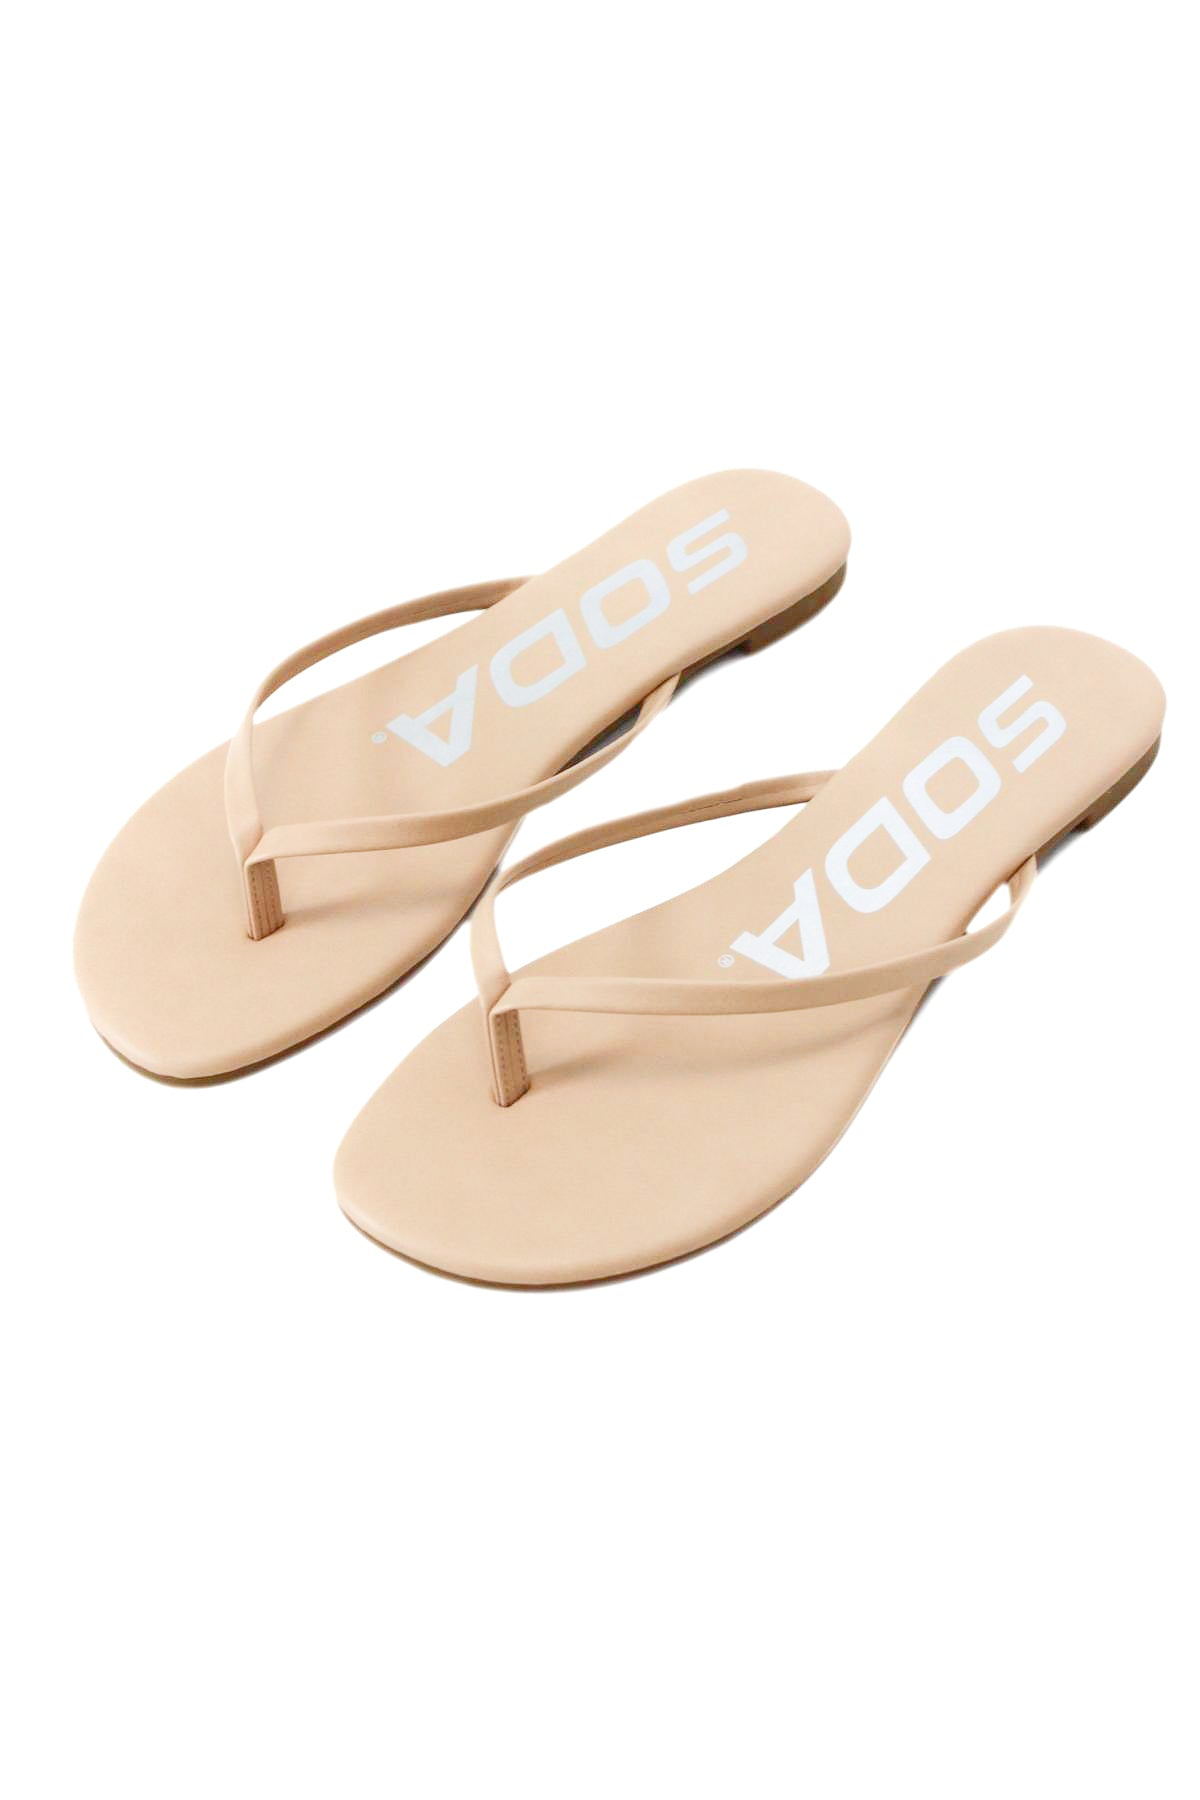 THE PERFECT NUDE FLIP FLOP